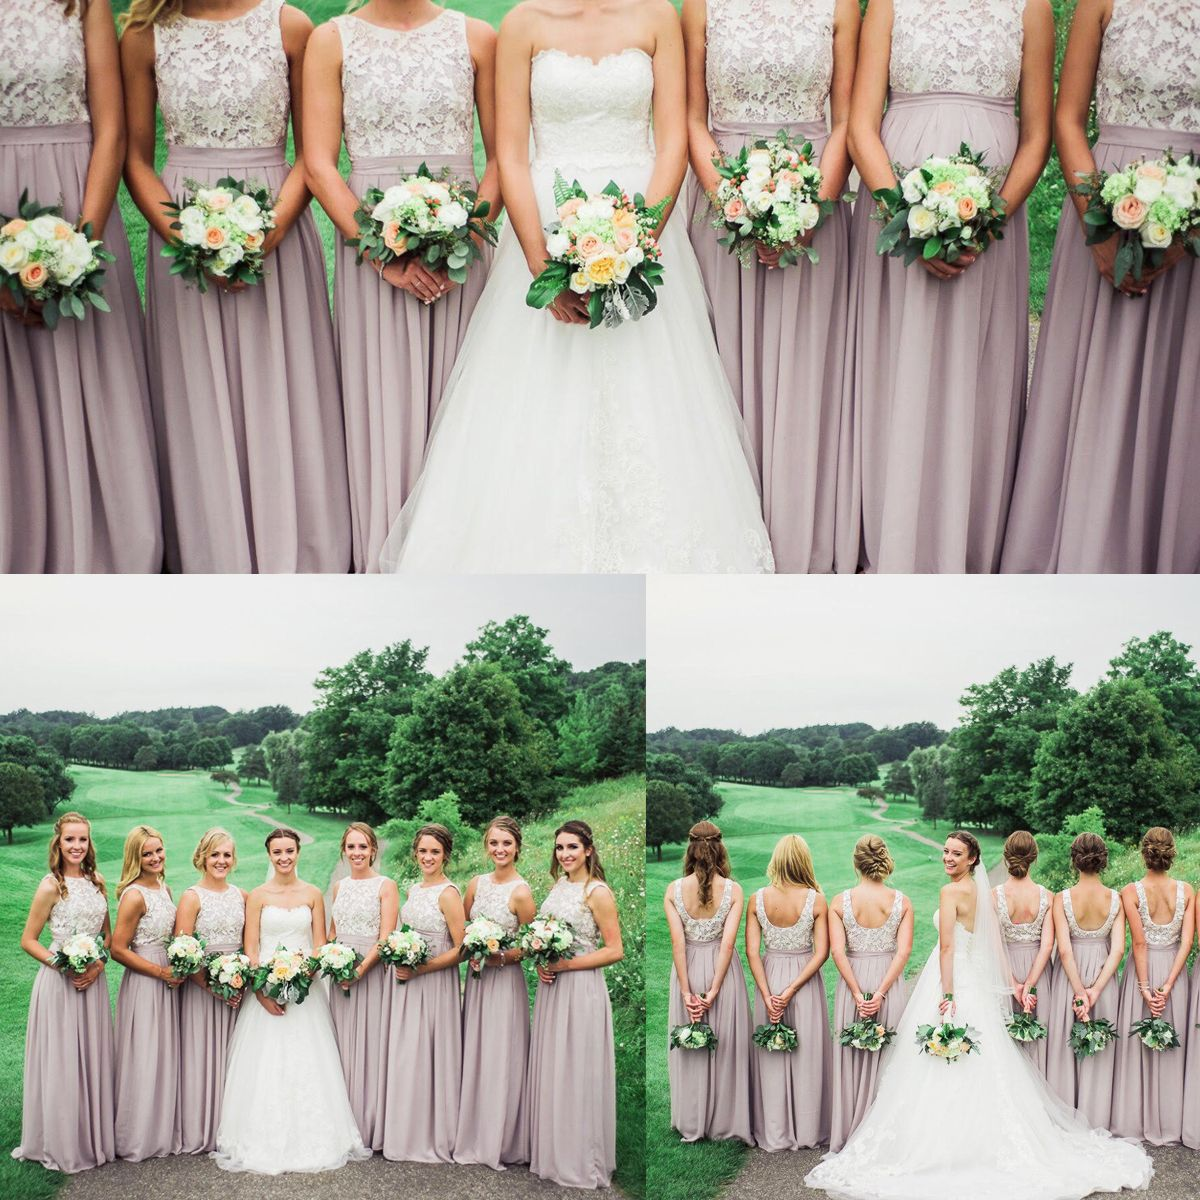 Kates girls looked truly amazing in their bridesmaid dresses kates girls looked truly amazing in their bridesmaid dresses item no 0116054 ombrellifo Choice Image